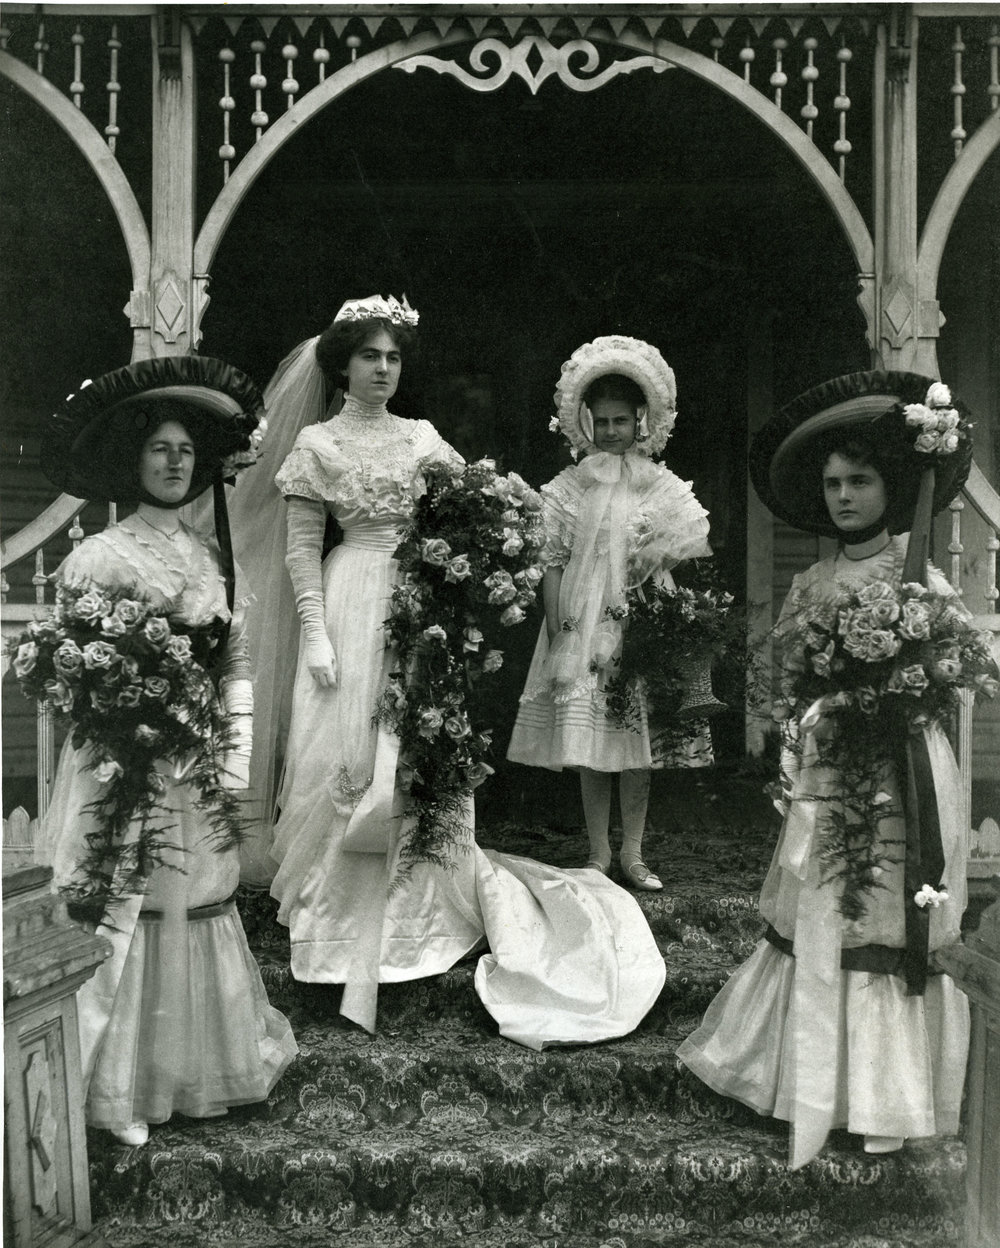 Mary Hamilton and bridal party, Holten House, Revelstoke, 1910.